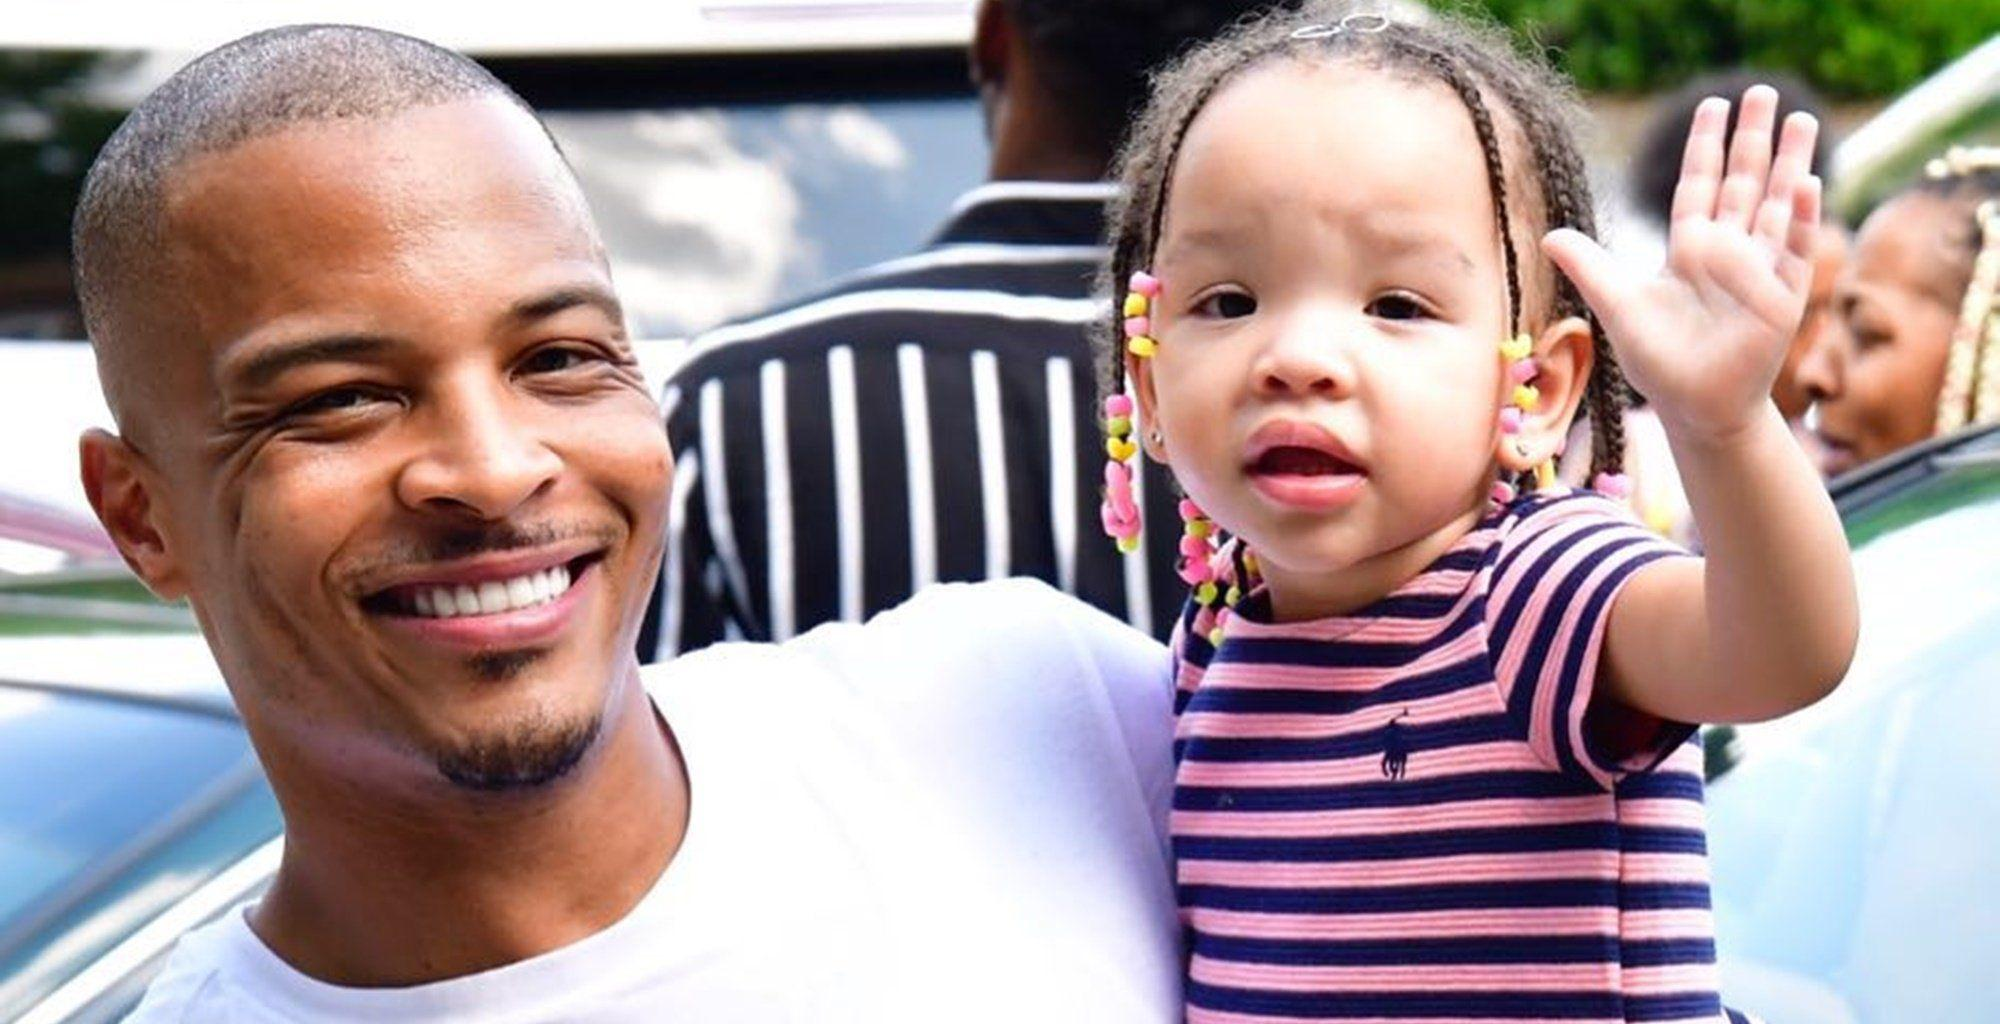 T.I. Is The Proudest Dad Next To His Baby Girl, Heiress Harris - Check Out Their Photo Together